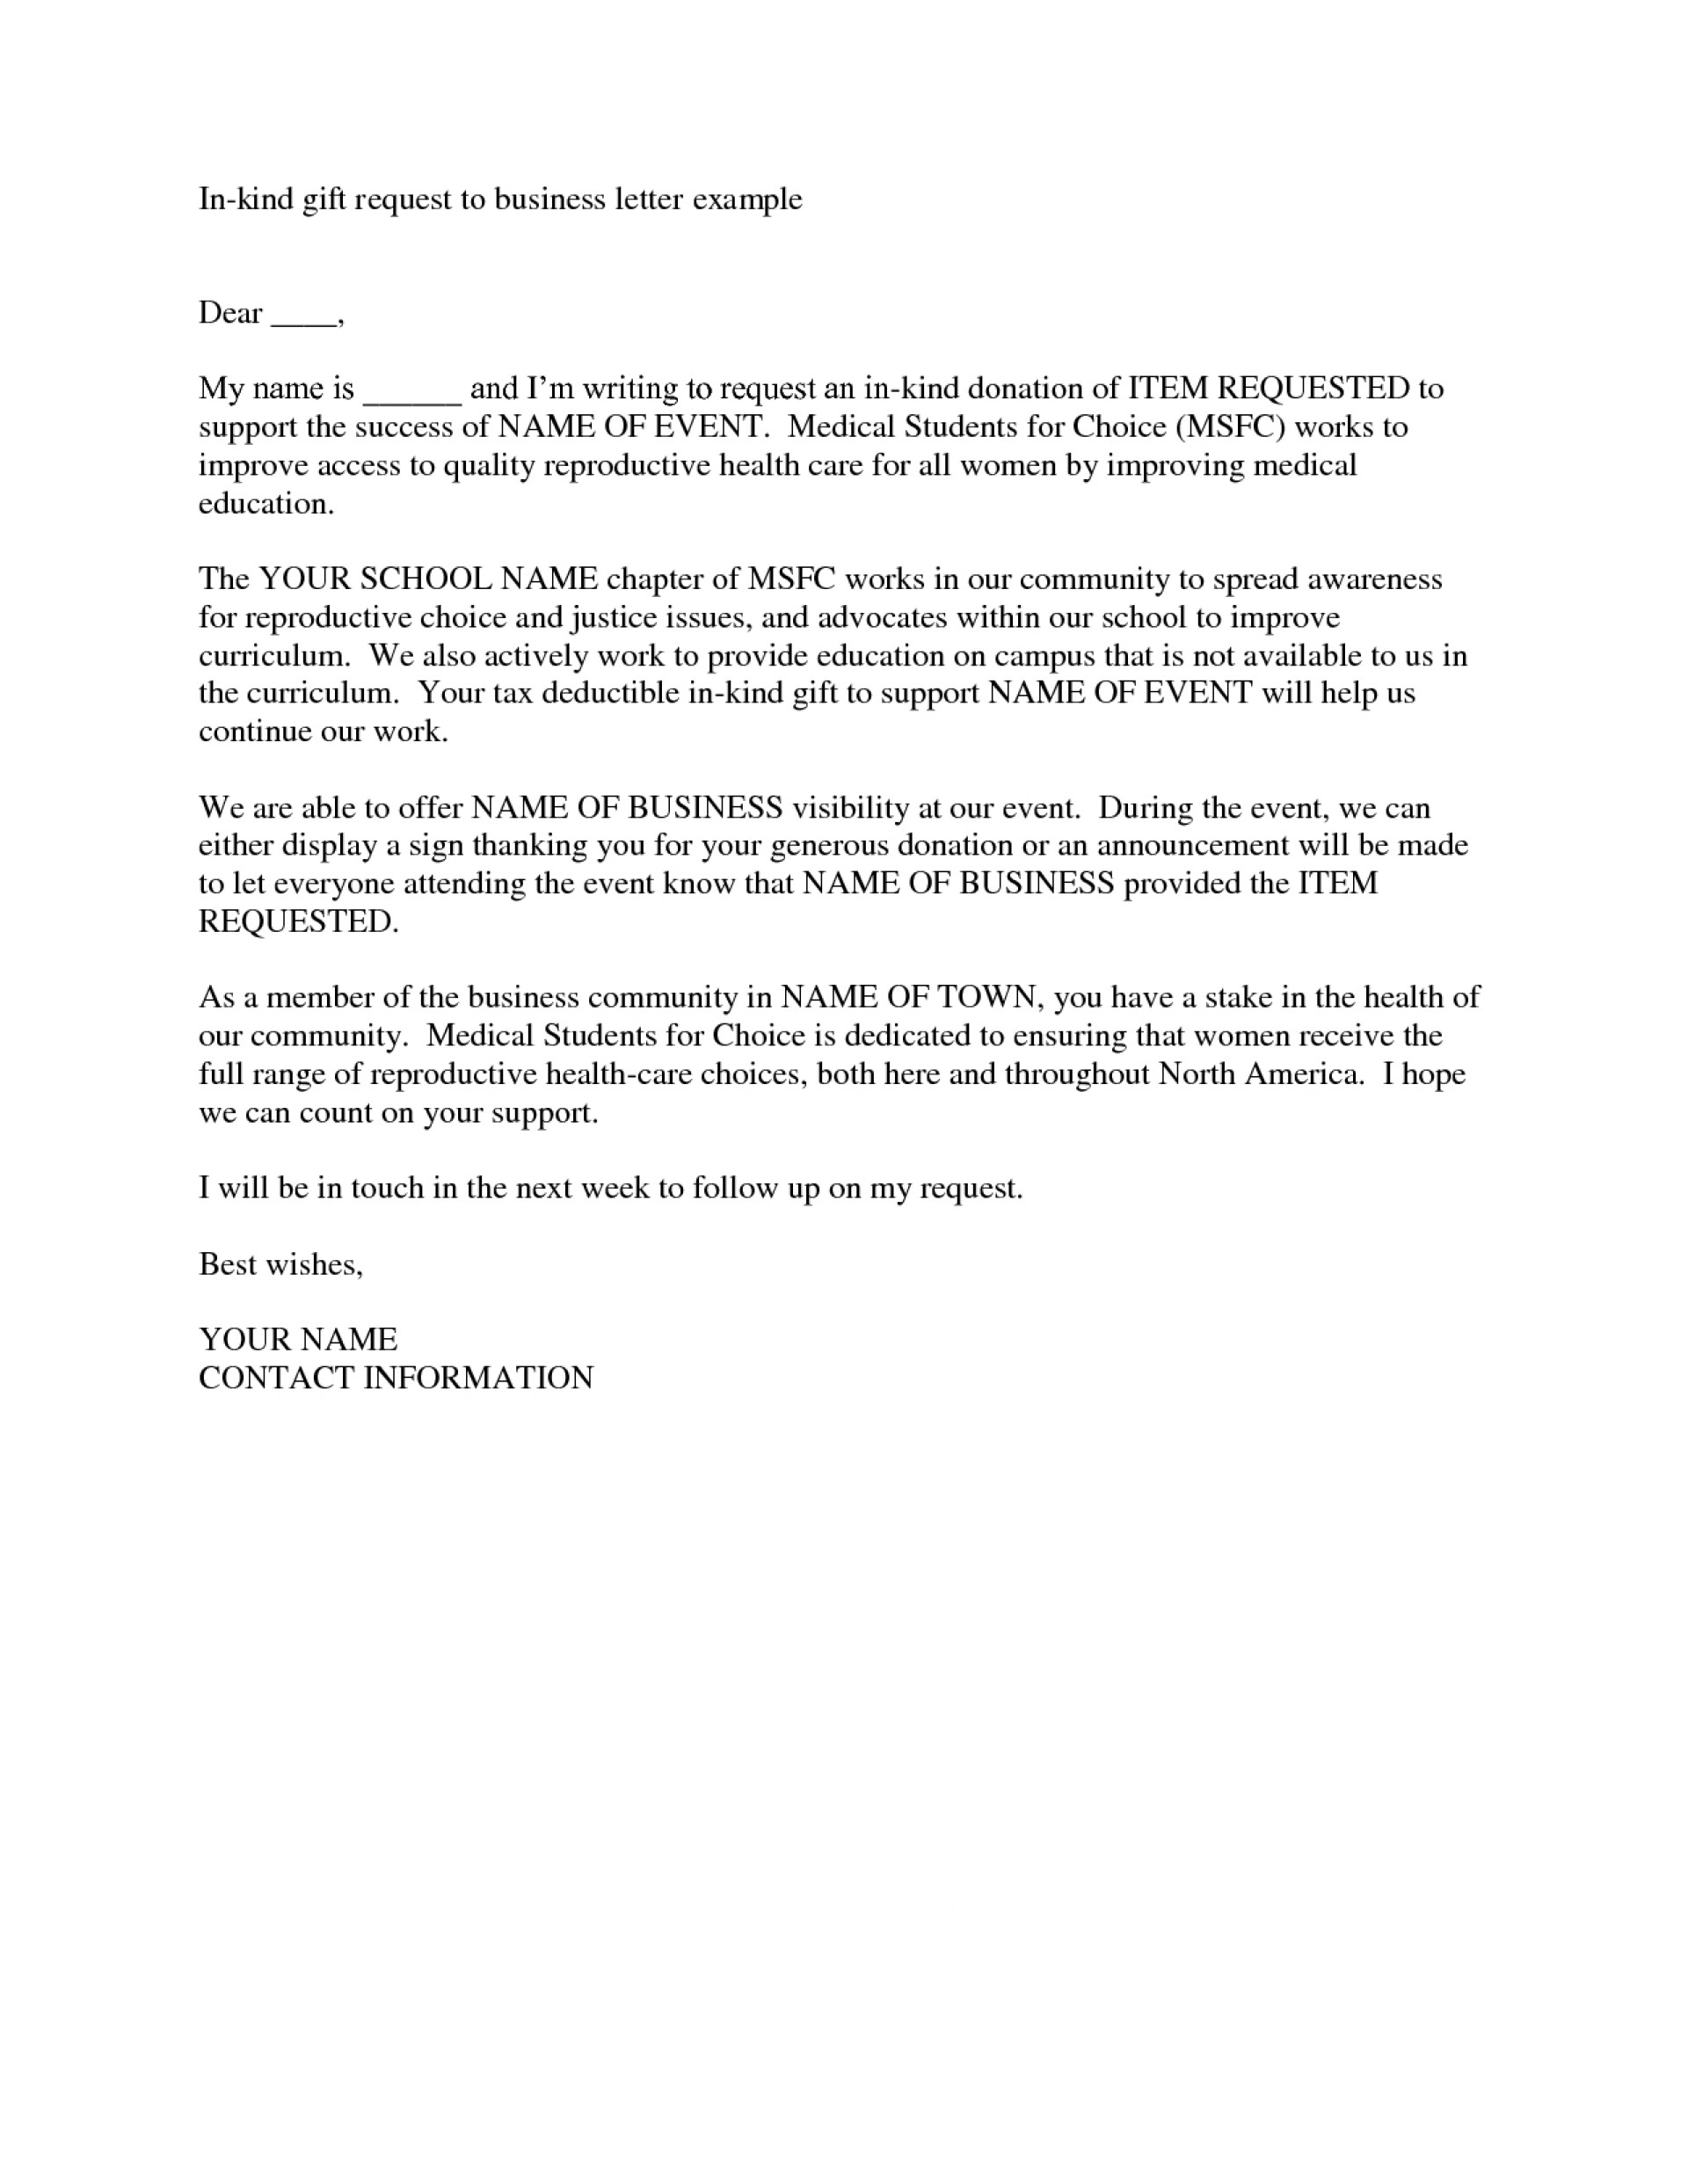 In Kind Donation Request Letter Template